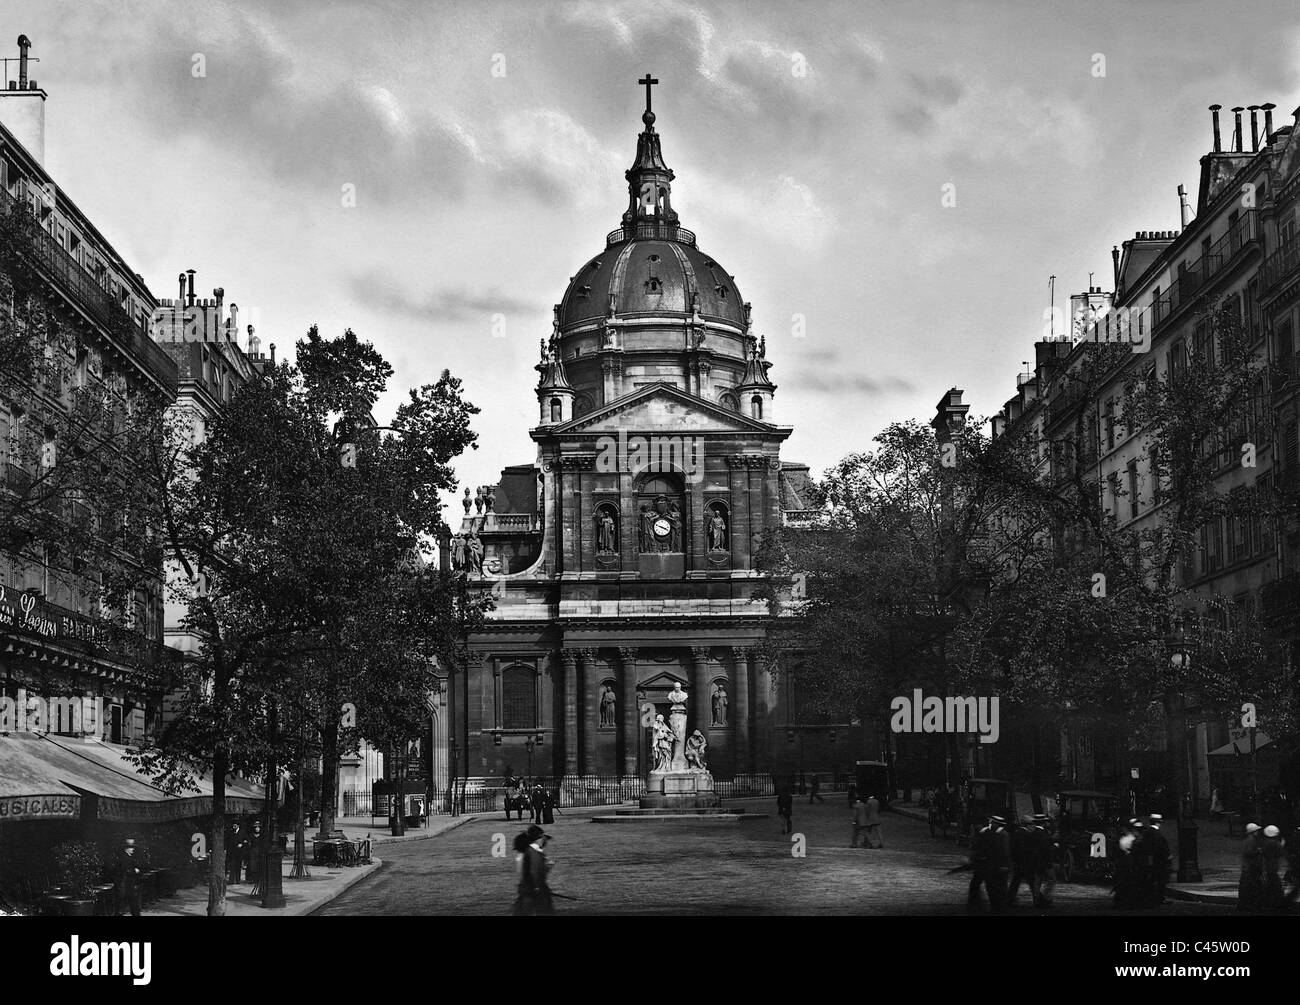 The church of the Sorbonne University in Paris - Stock Image